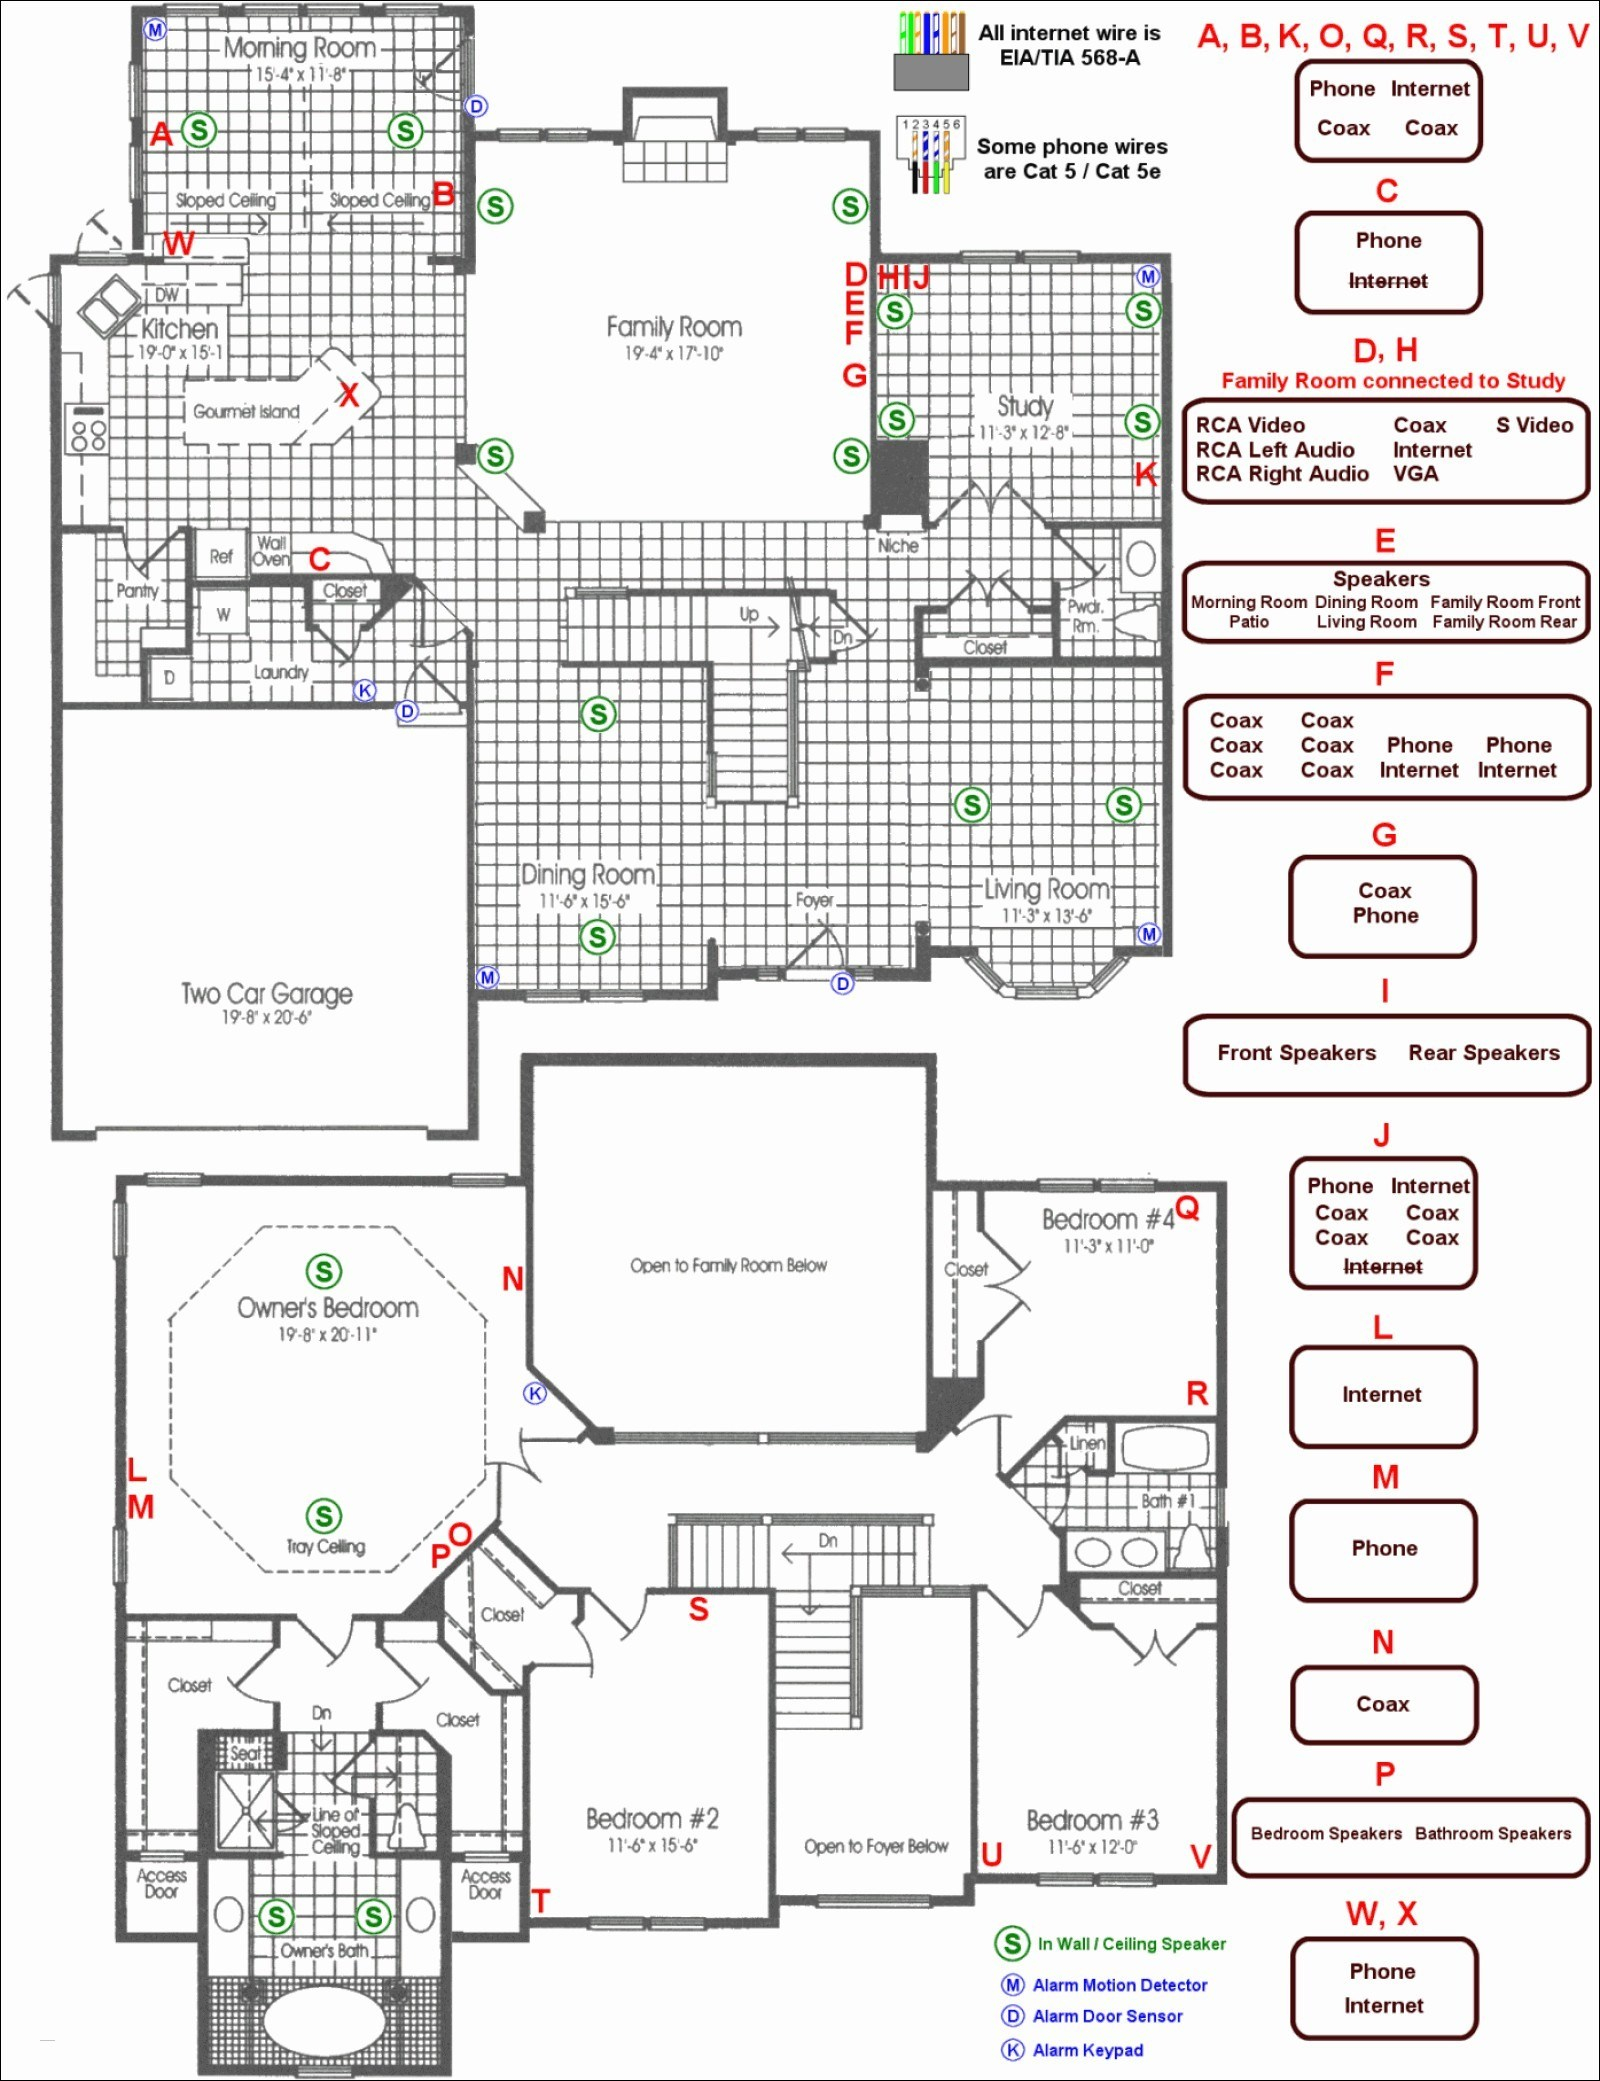 electrical wiring diagram house Download-home wiring diagram Collection Aktive Crossoverfrequenzweiche Mit Max4478 360customs Crossover Schematic Rev 0d wiring lighting 8-r